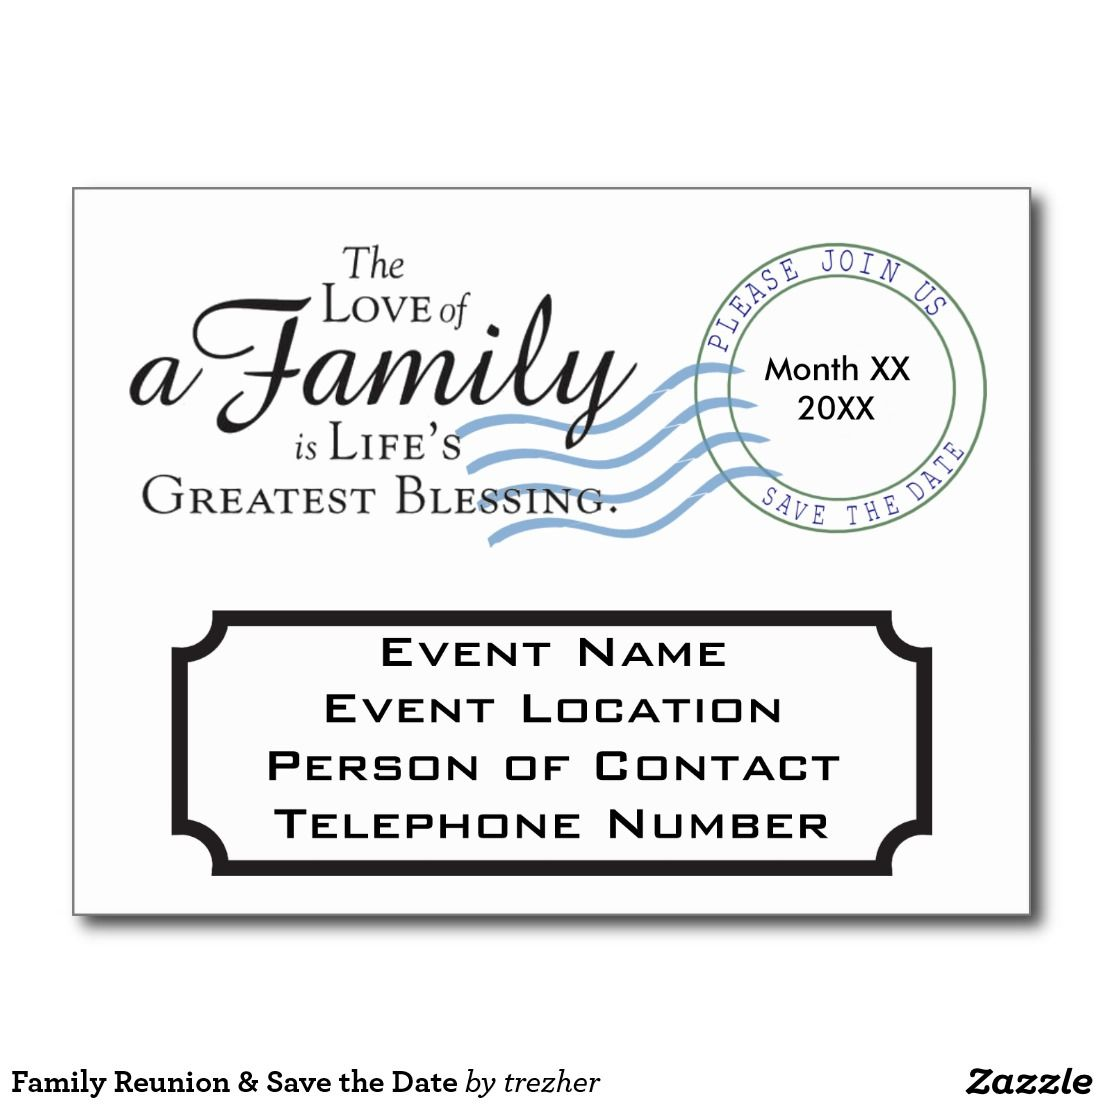 Family Reunion & Save The Date Announcement Postcard